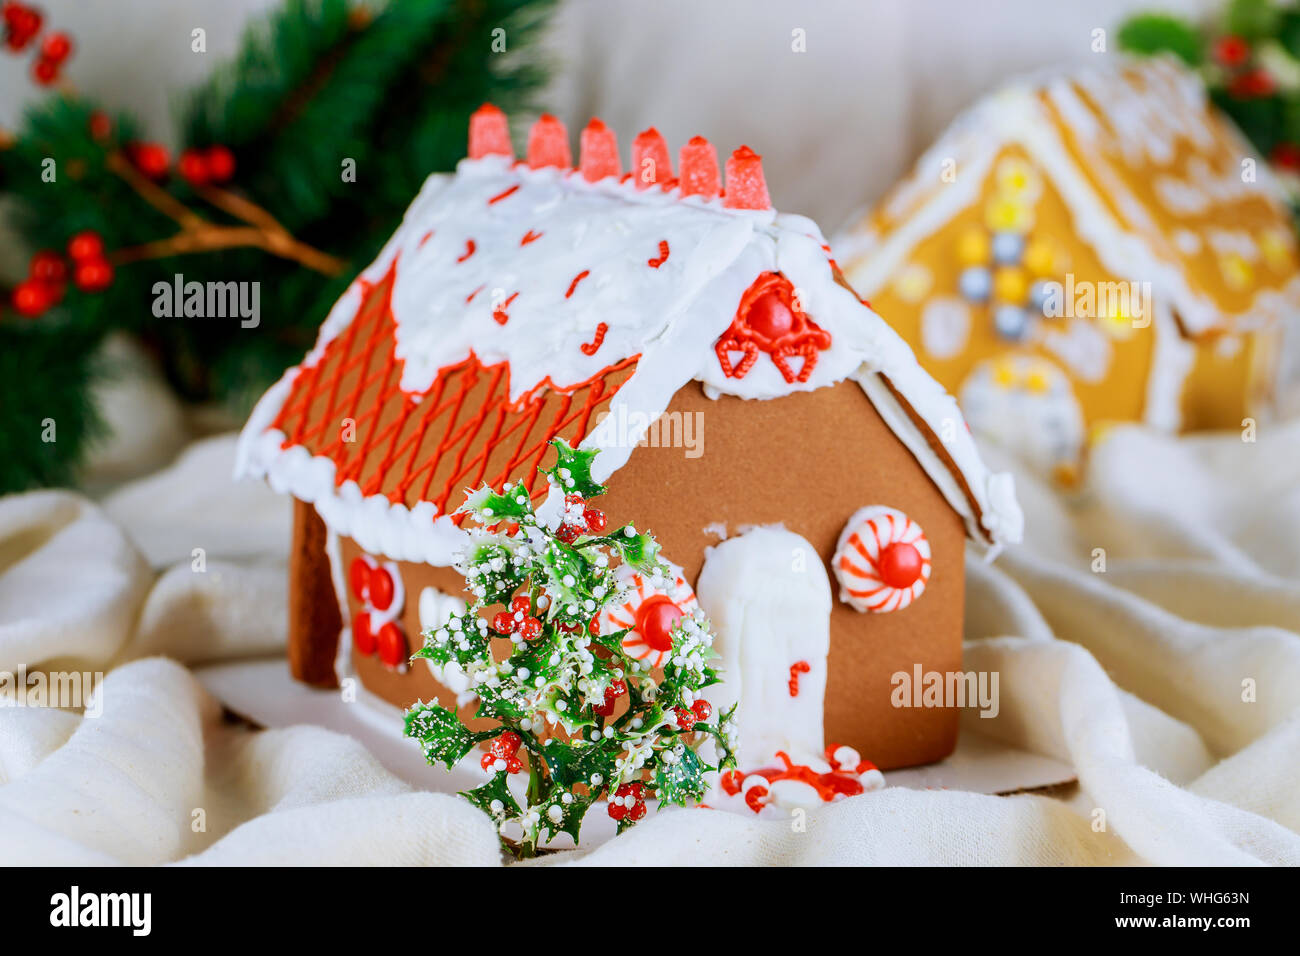 Christmas Gingerbread House Background.Assorted Christmas Gingerbread Cookies Village House Tree